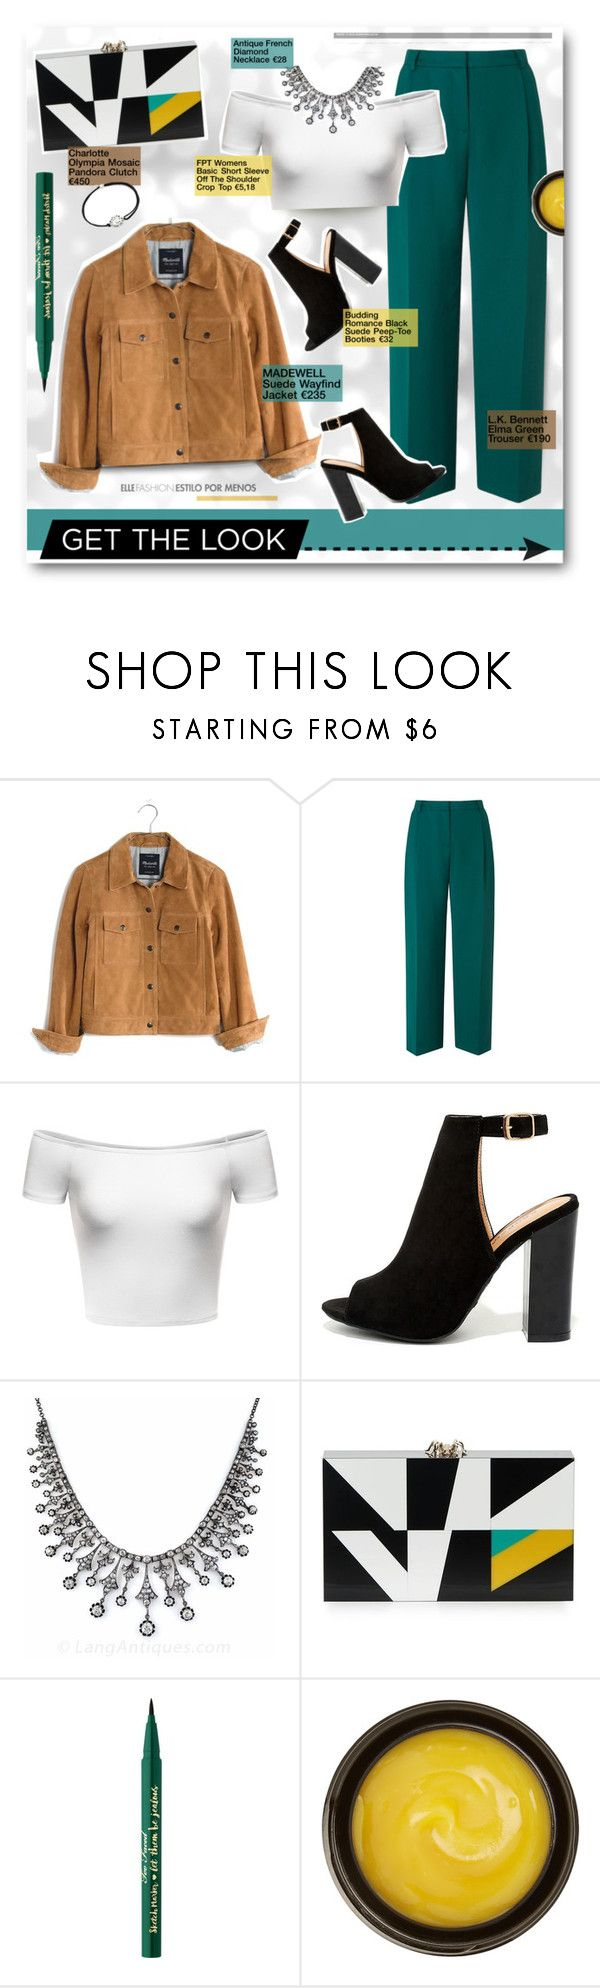 """Get the look"" by fashionablemy ❤ liked on Polyvore featuring Madewell, L.K.Bennett, LULUS, Charlotte Olympia, Too Faced Cosmetics, de Mamiel, Alex and Ani, GetTheLook and colourful"